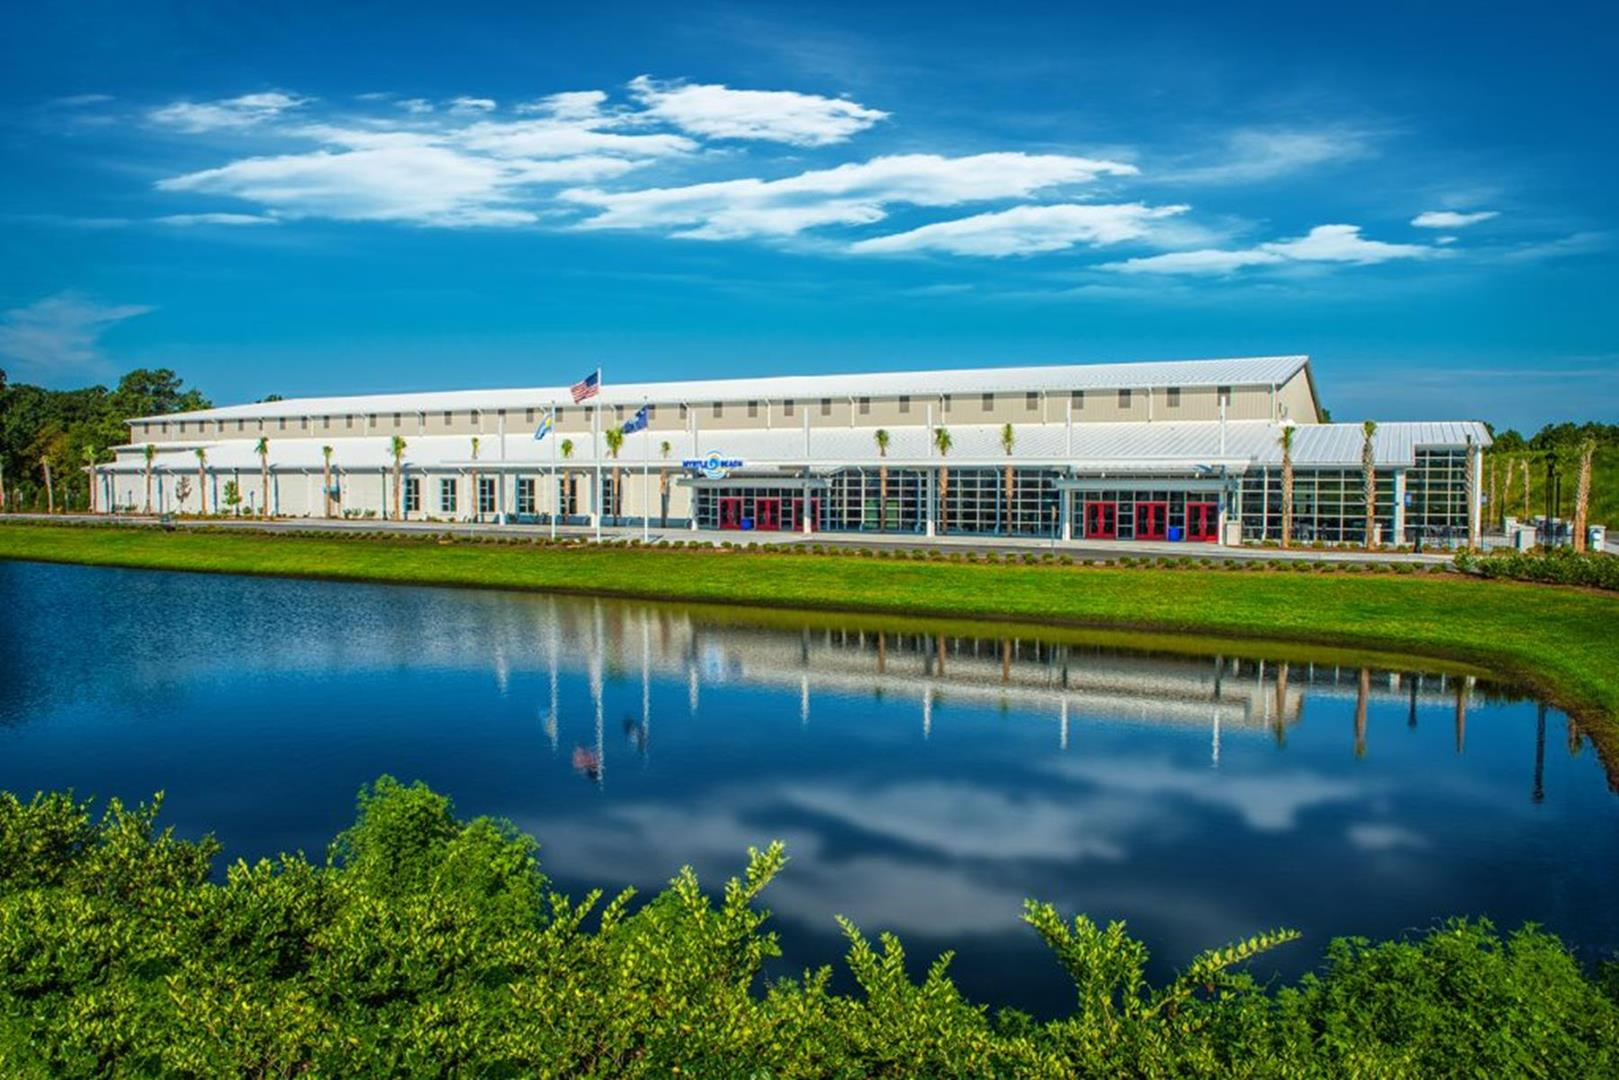 9 Top Indoor Facilities for 2016 - Sports Planning Guide